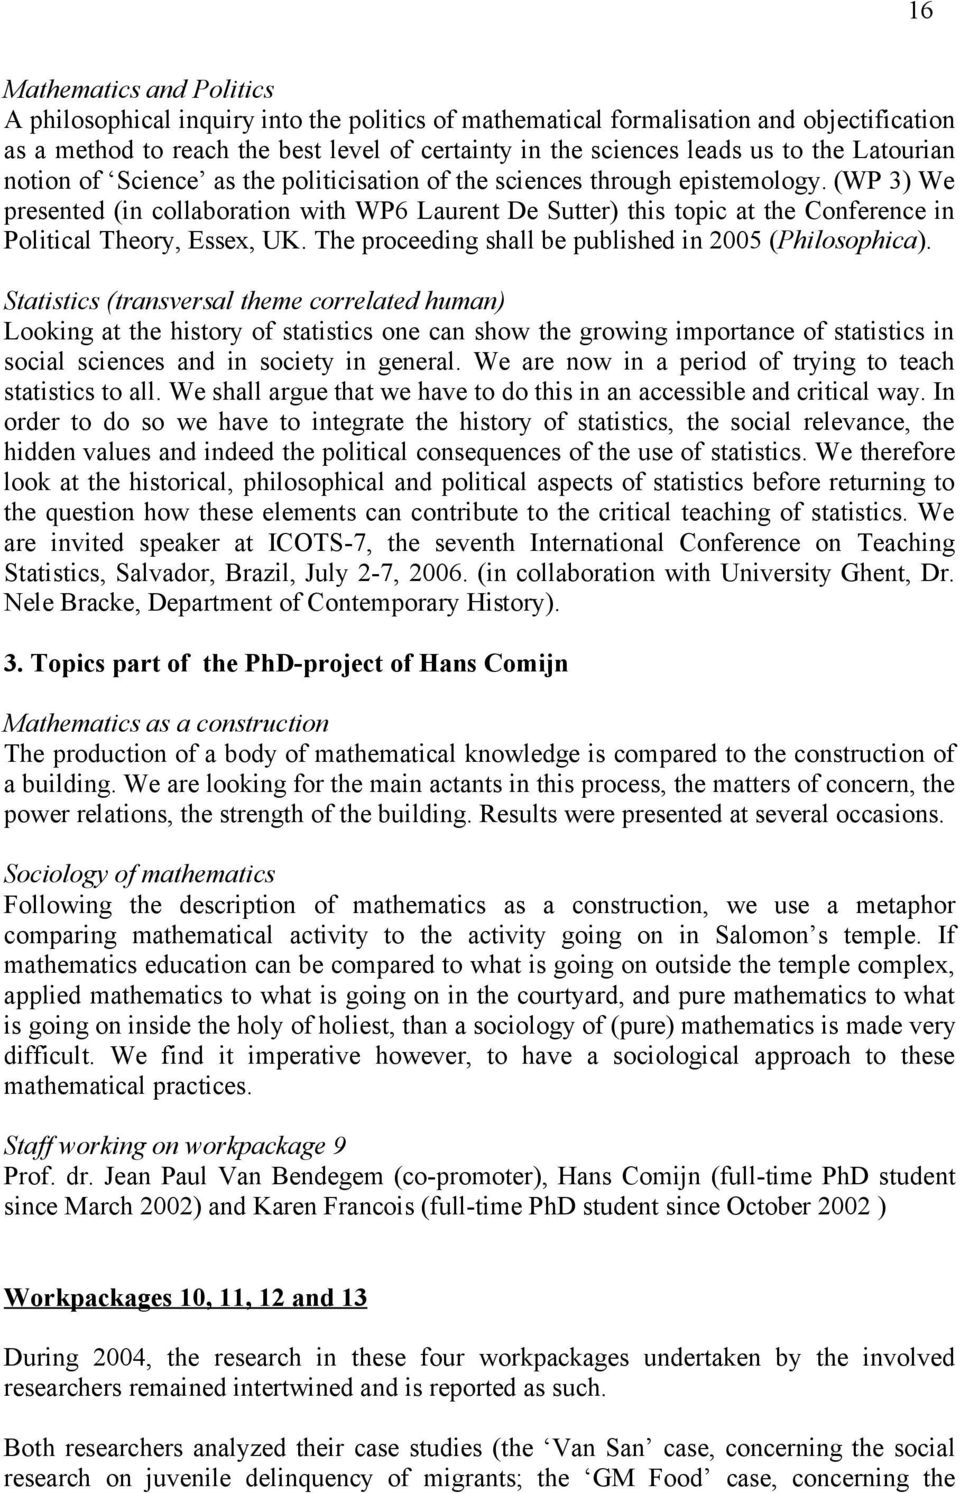 (WP 3) We presented (in collaboration with WP6 Laurent De Sutter) this topic at the Conference in Political Theory, Essex, UK. The proceeding shall be published in 2005 (Philosophica).